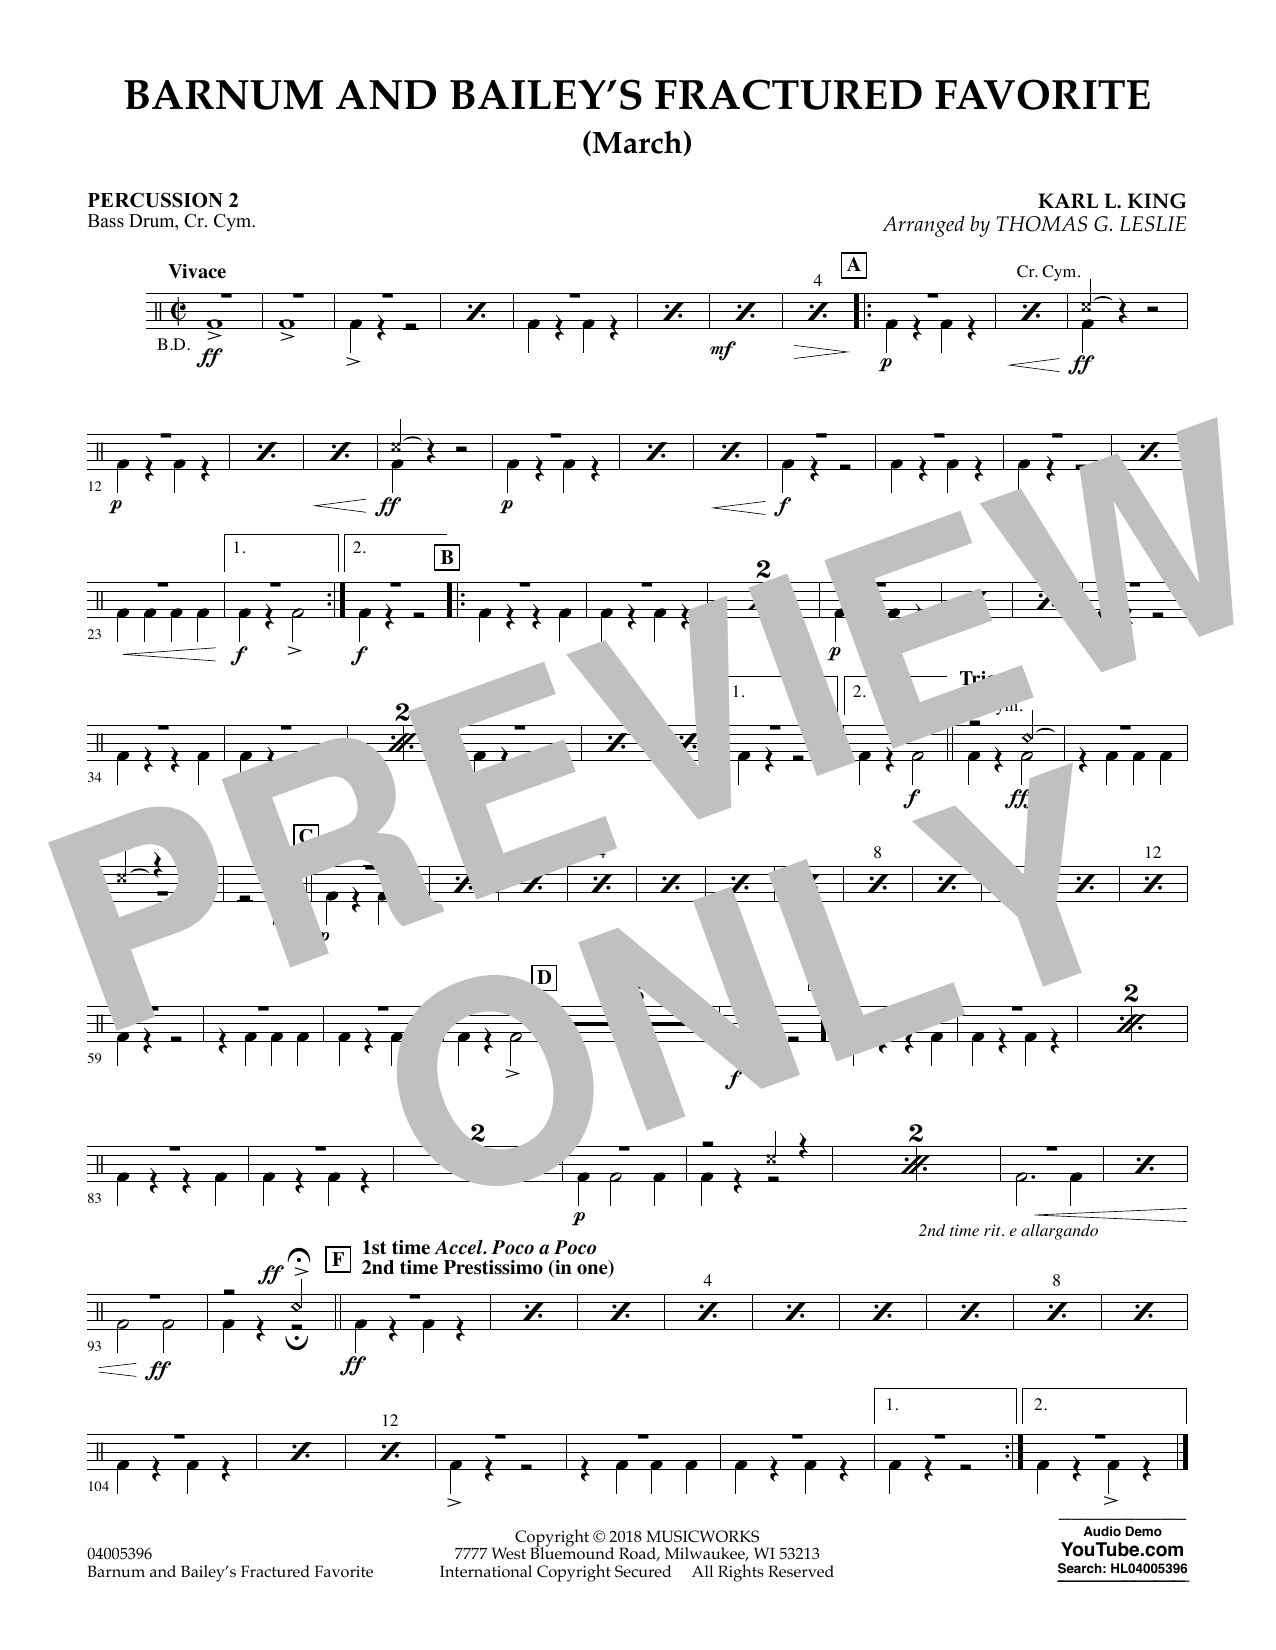 Barnum and Bailey's Fractured Favorite - Percussion 2 (Concert Band)